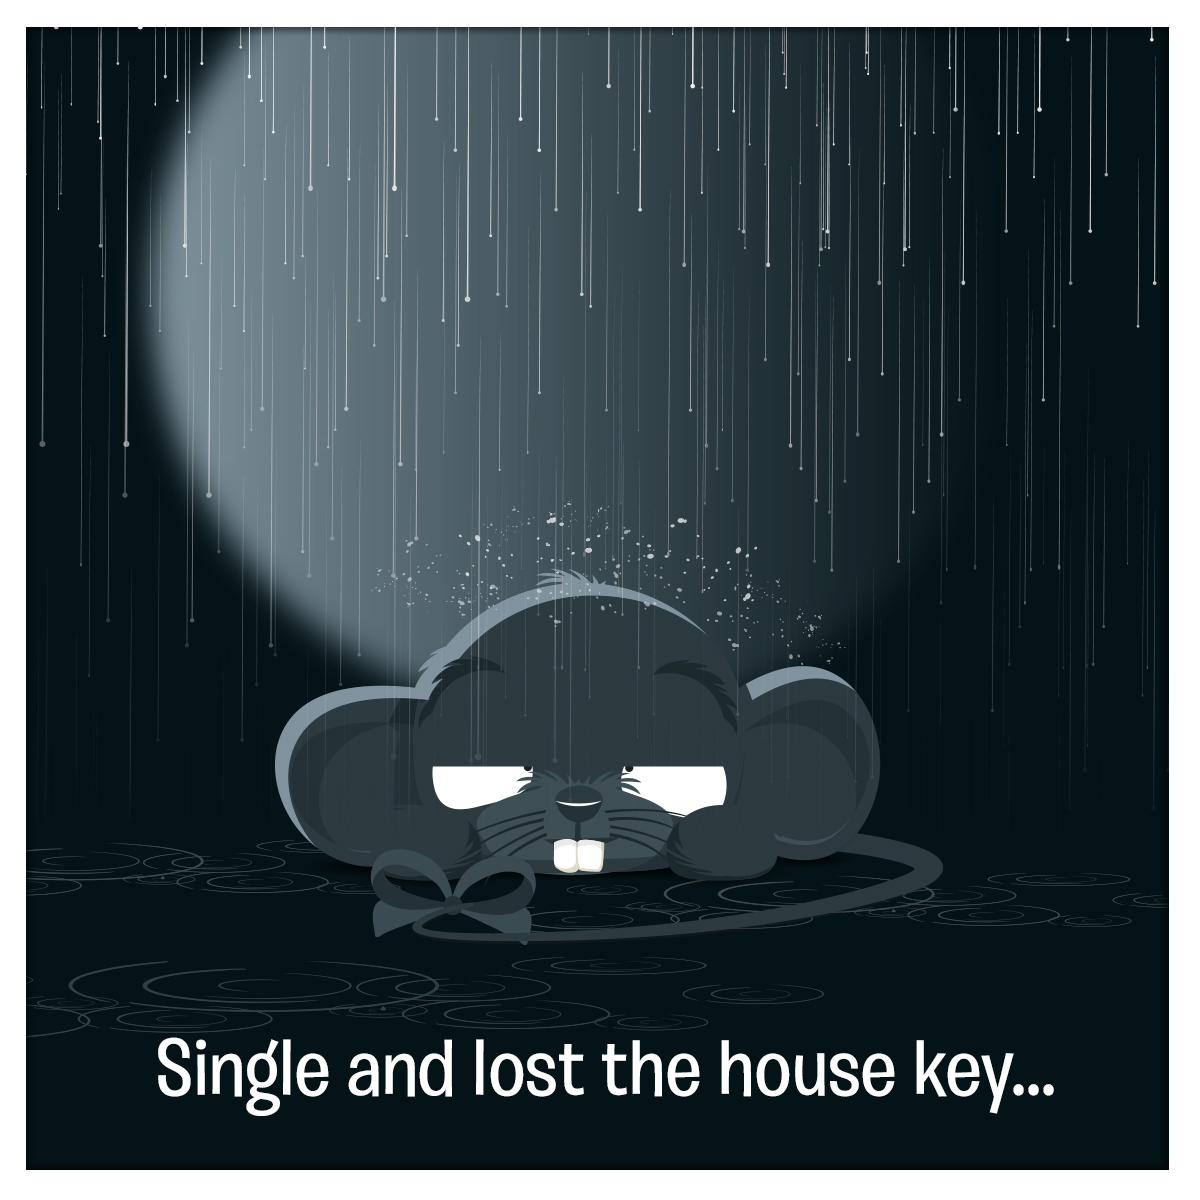 CARTOON HOUSEKEY